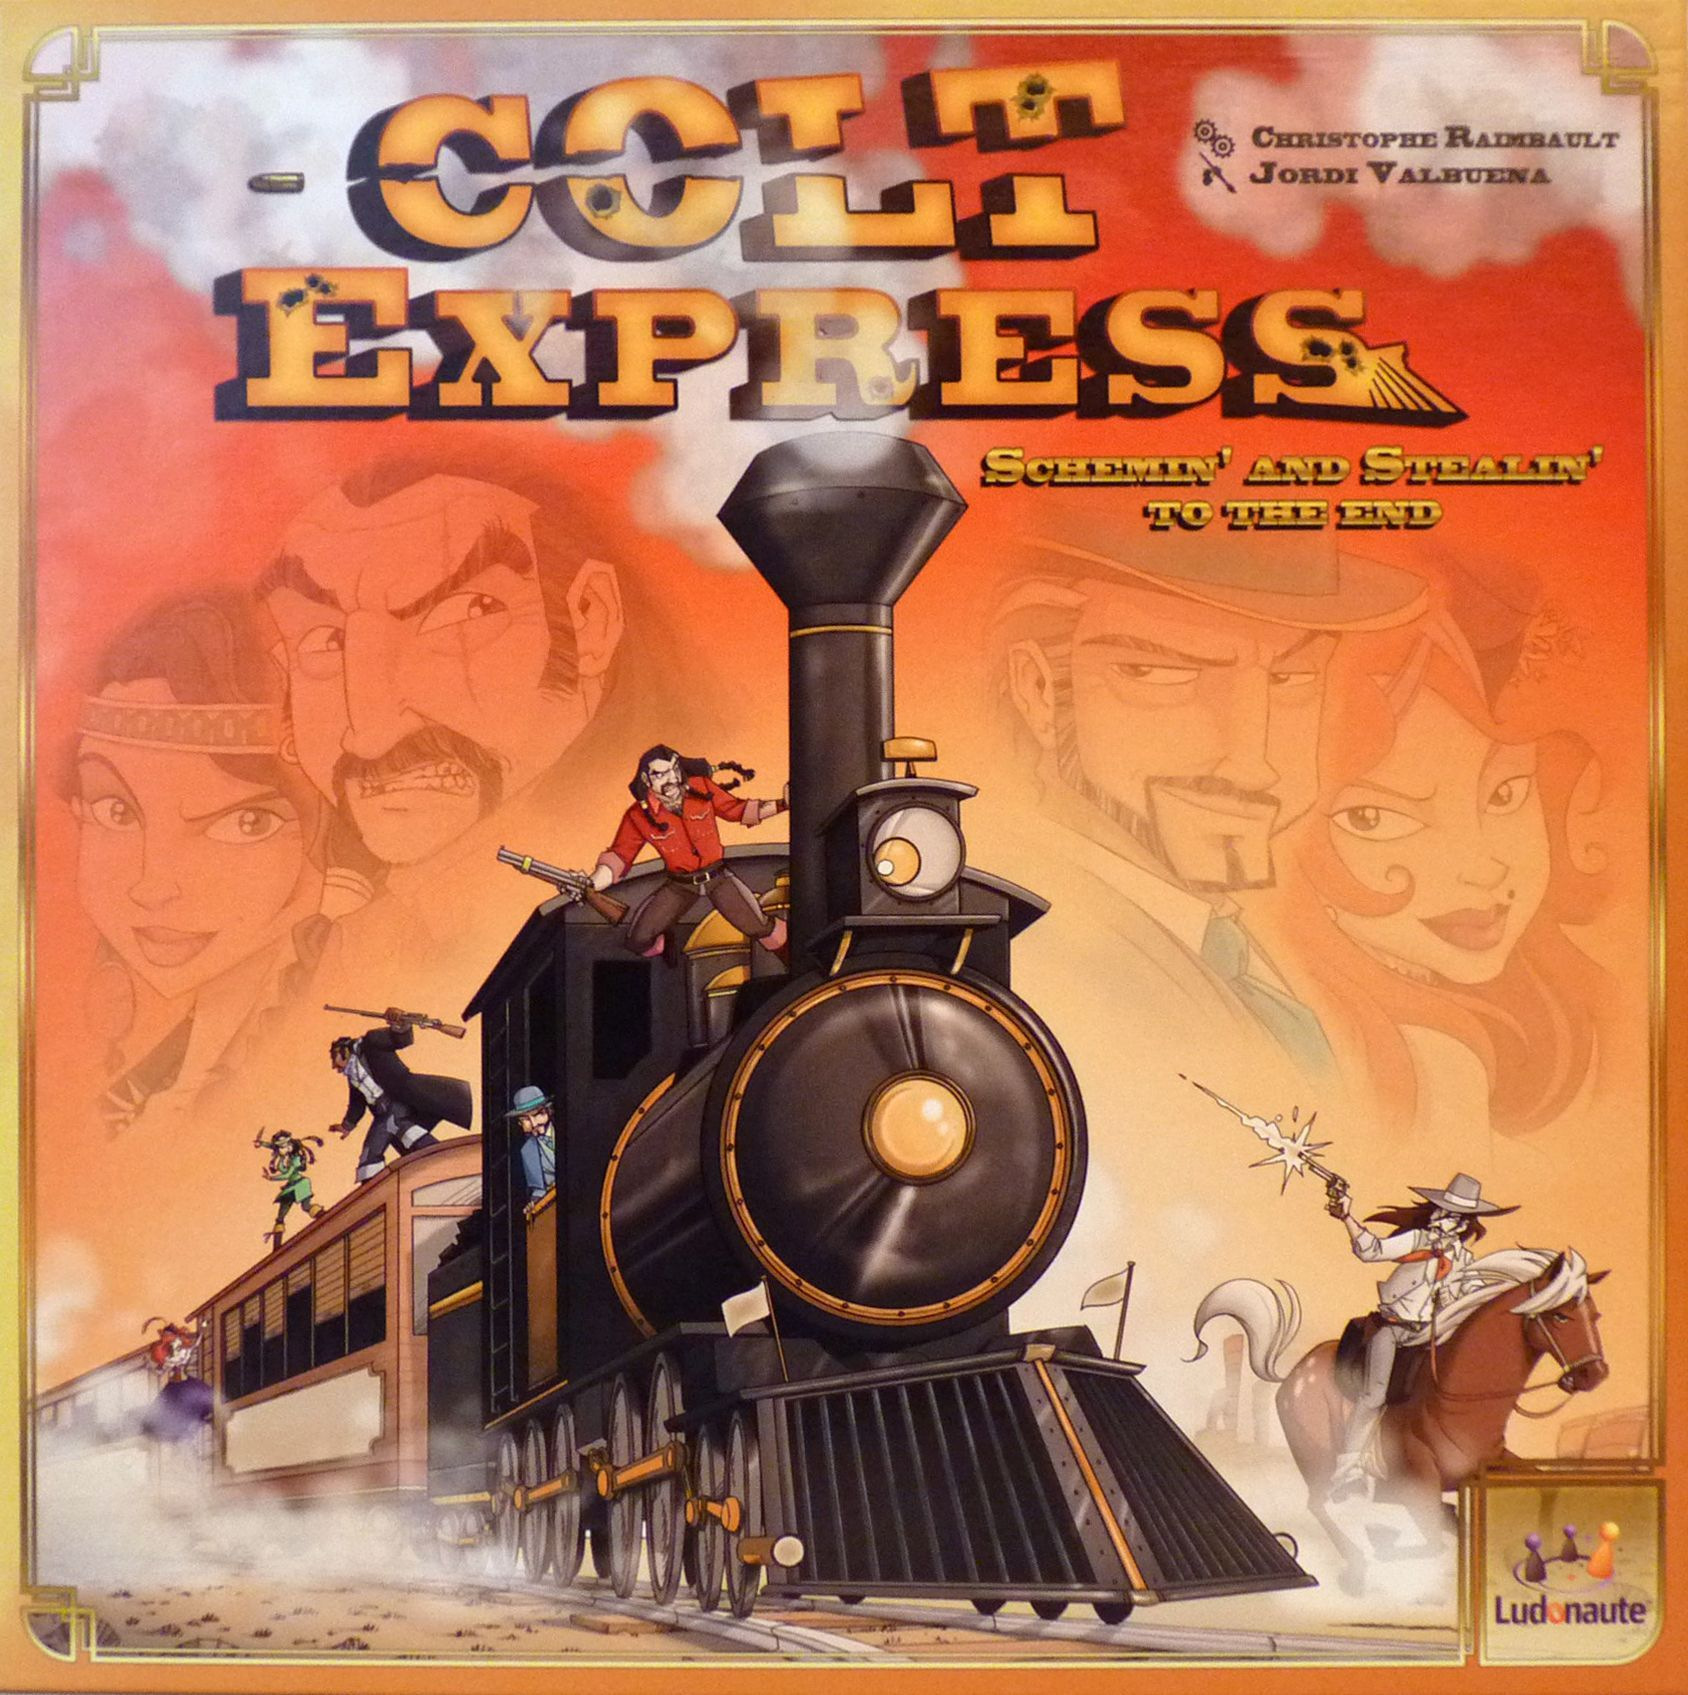 Main image for Colt Express board game